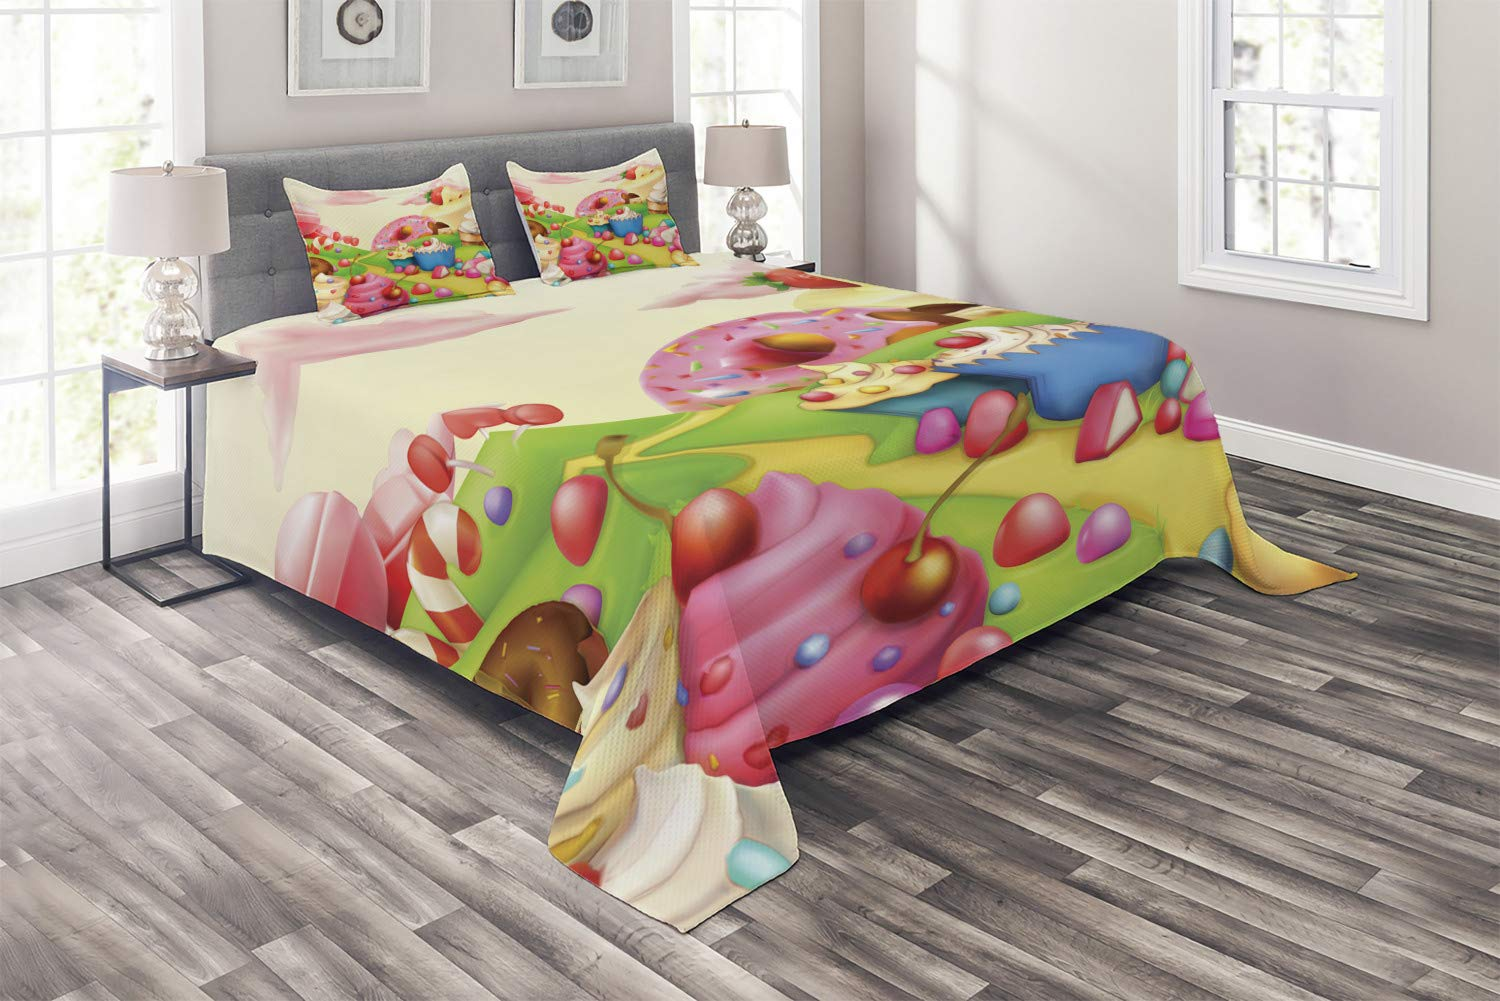 Ambesonne Modern Coverlet, Yummy Donuts Land Cupcakes Ice Cream Cotton Candy Clouds Kids Nursery Design, 3 Piece Decorative Quilted Bedspread Set with 2 Pillow Shams, Queen Size, Yellow Pink by Ambesonne